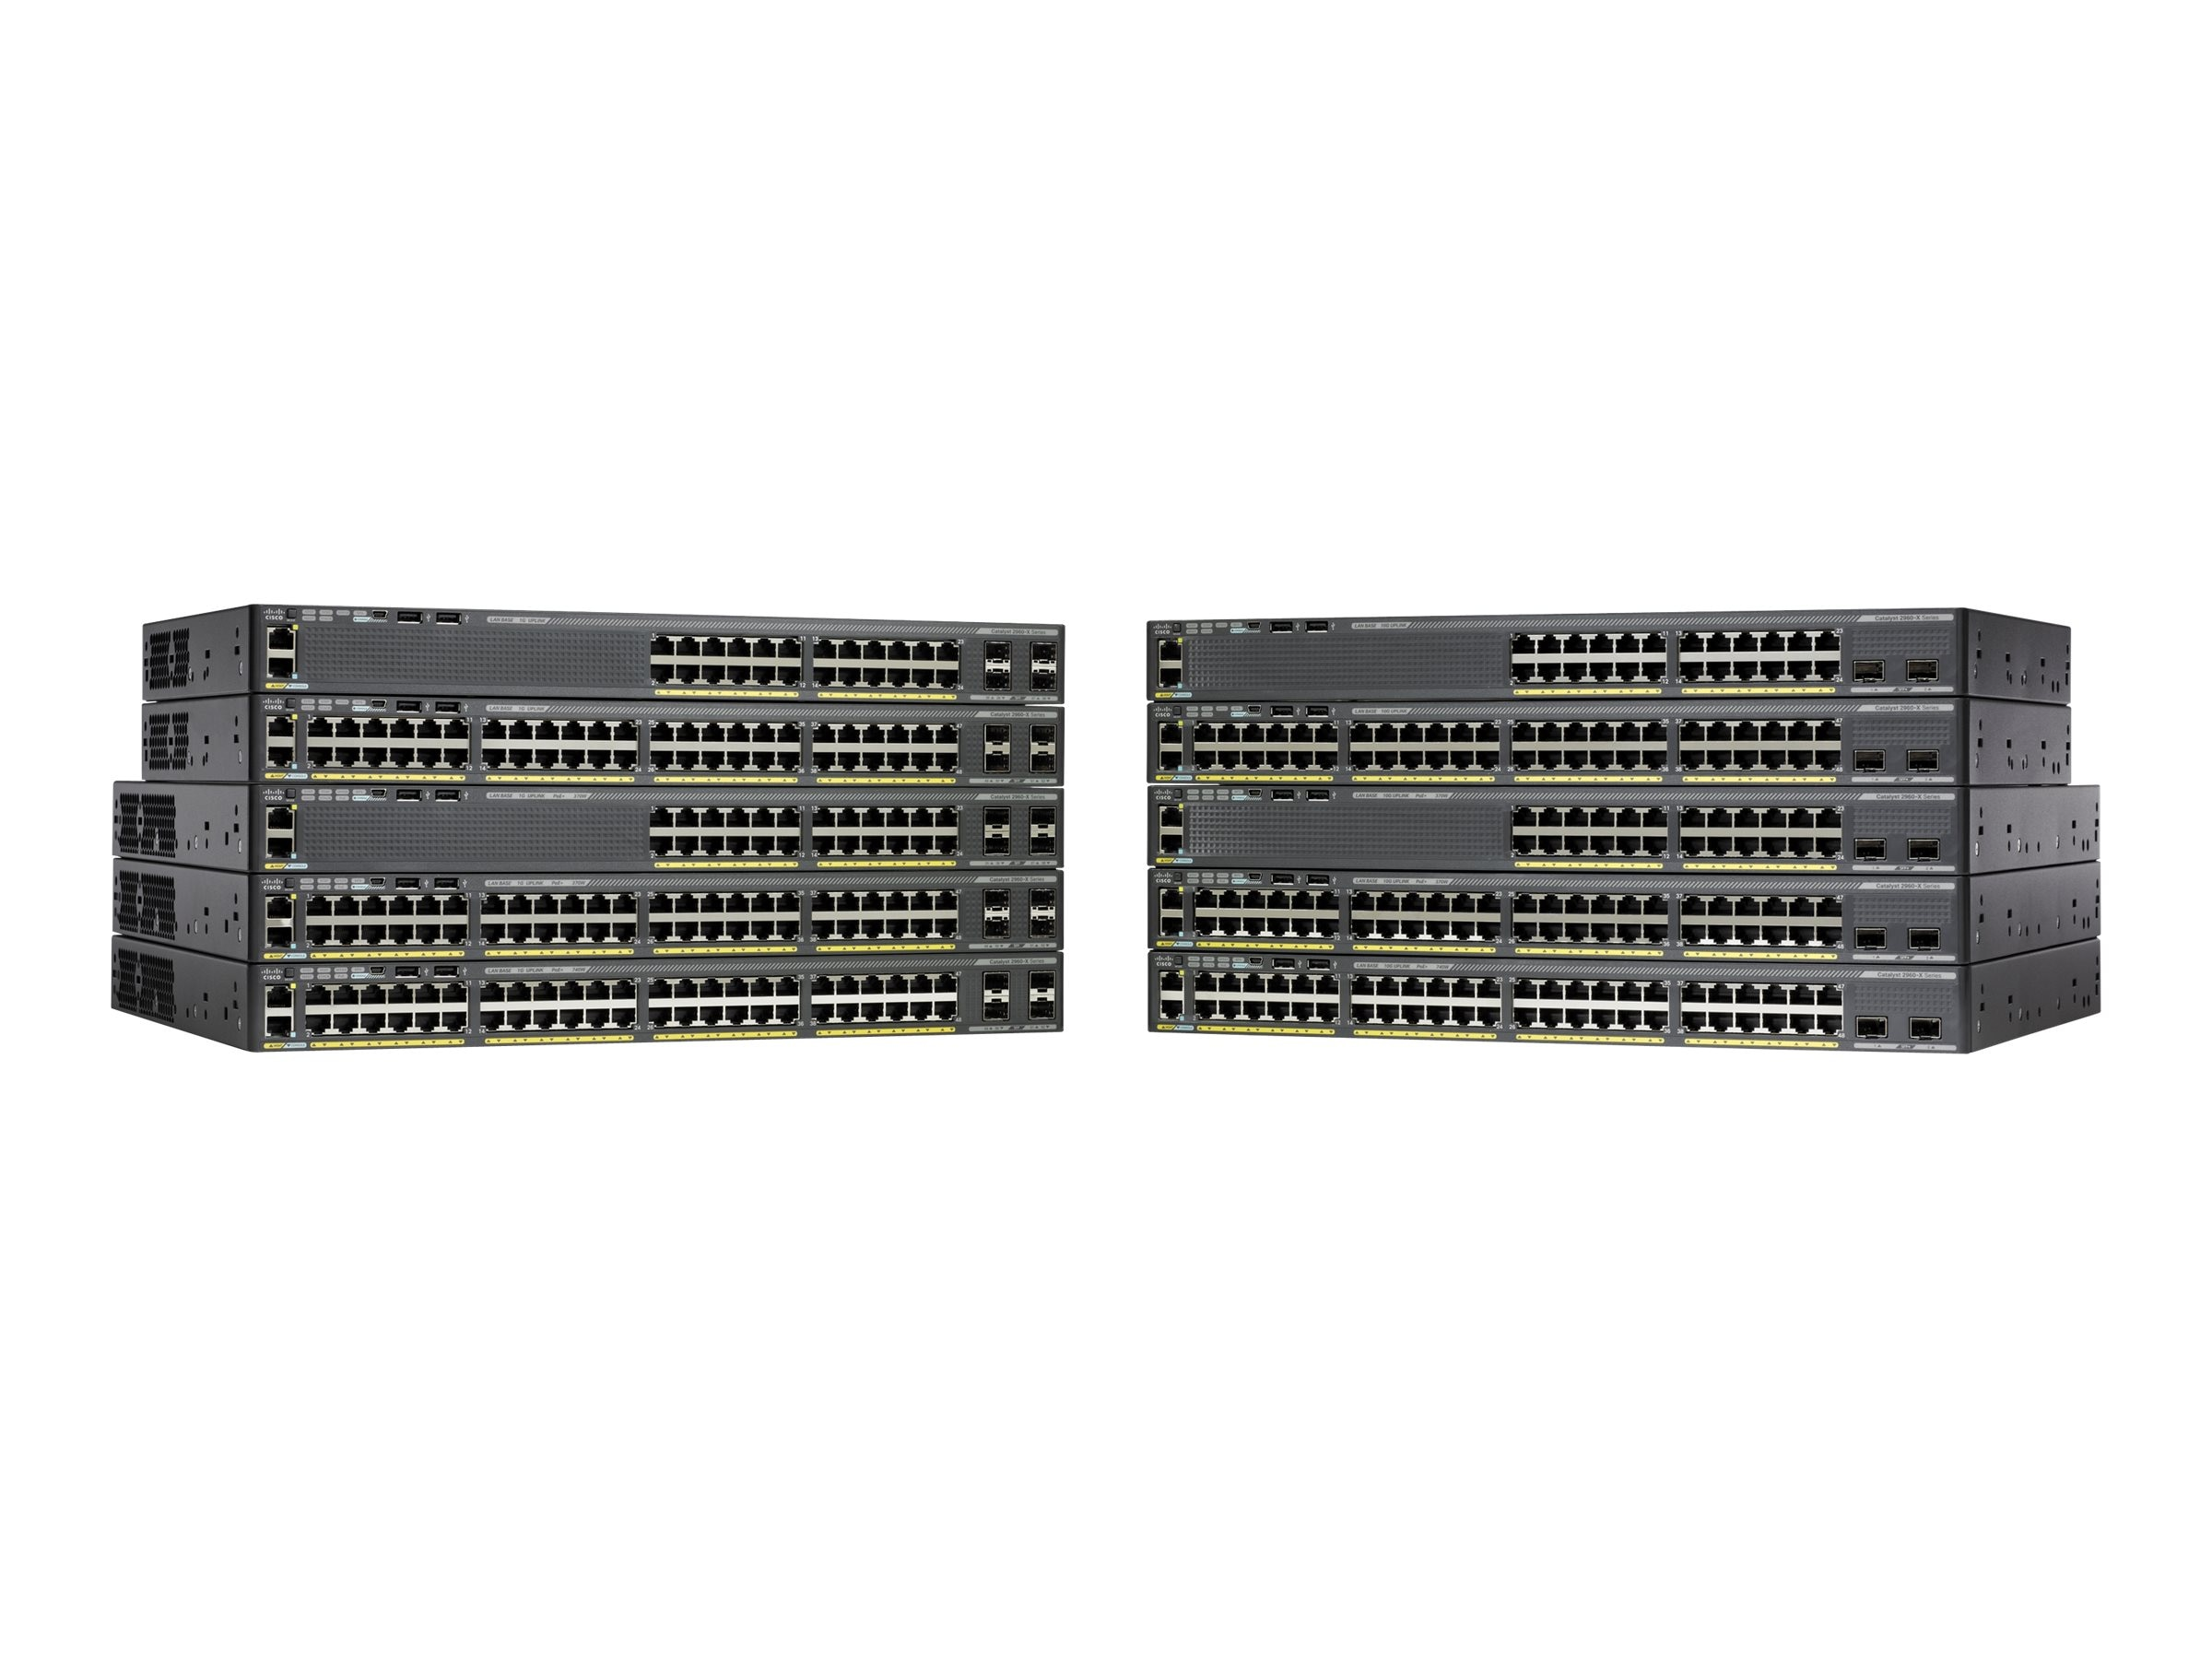 Cisco Catalyst 2960-XR 48 GIGE PoE  740W 4 X 1G, WS-C2960XR-48FPS-I, 16227672, Network Switches